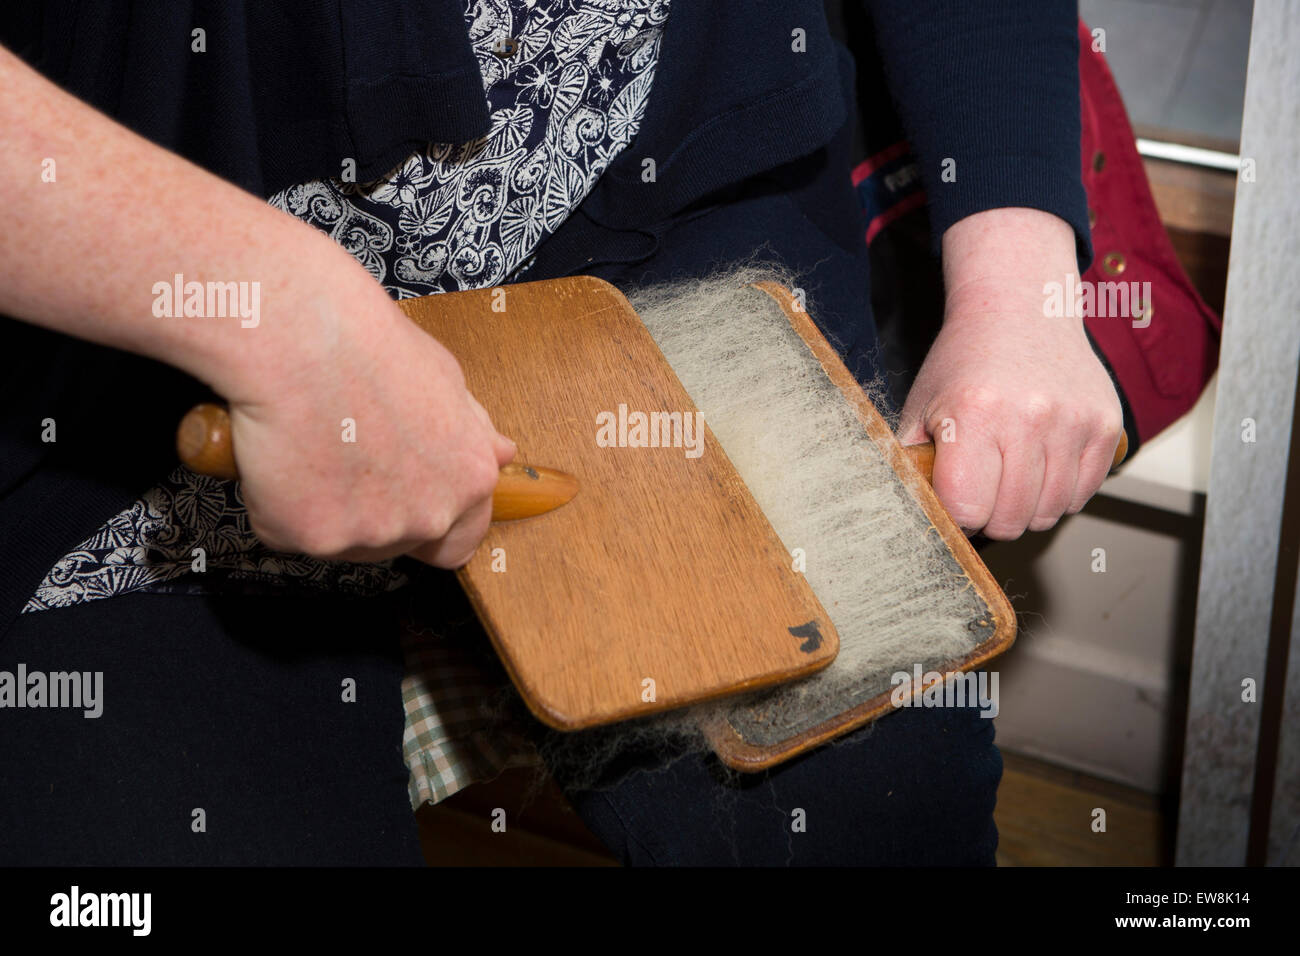 Ireland, Co Wexford, Enniscorthy, National 1798 Rebellion Centre,  carding wool by hand to spin yarn - Stock Image